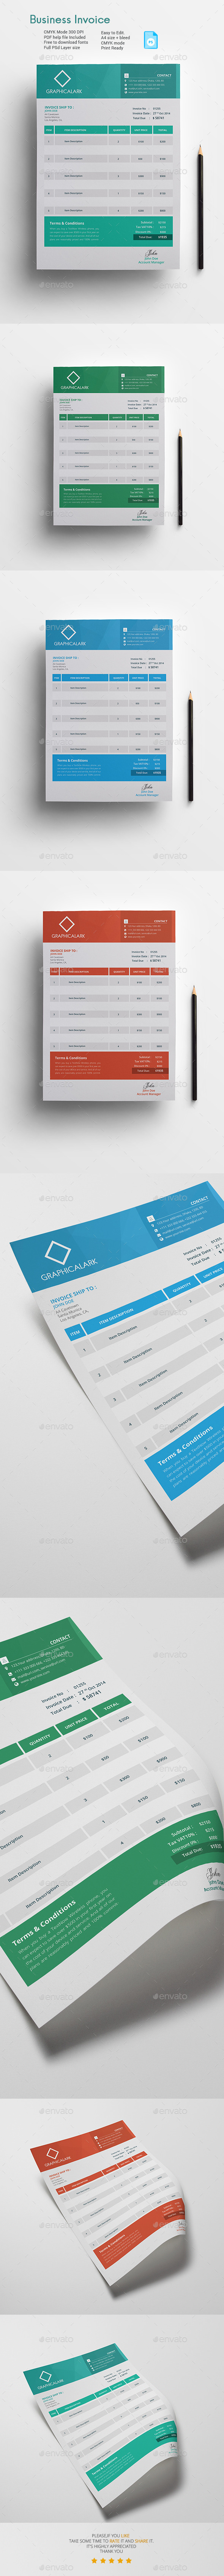 GraphicRiver Business Invoice Template 11427904